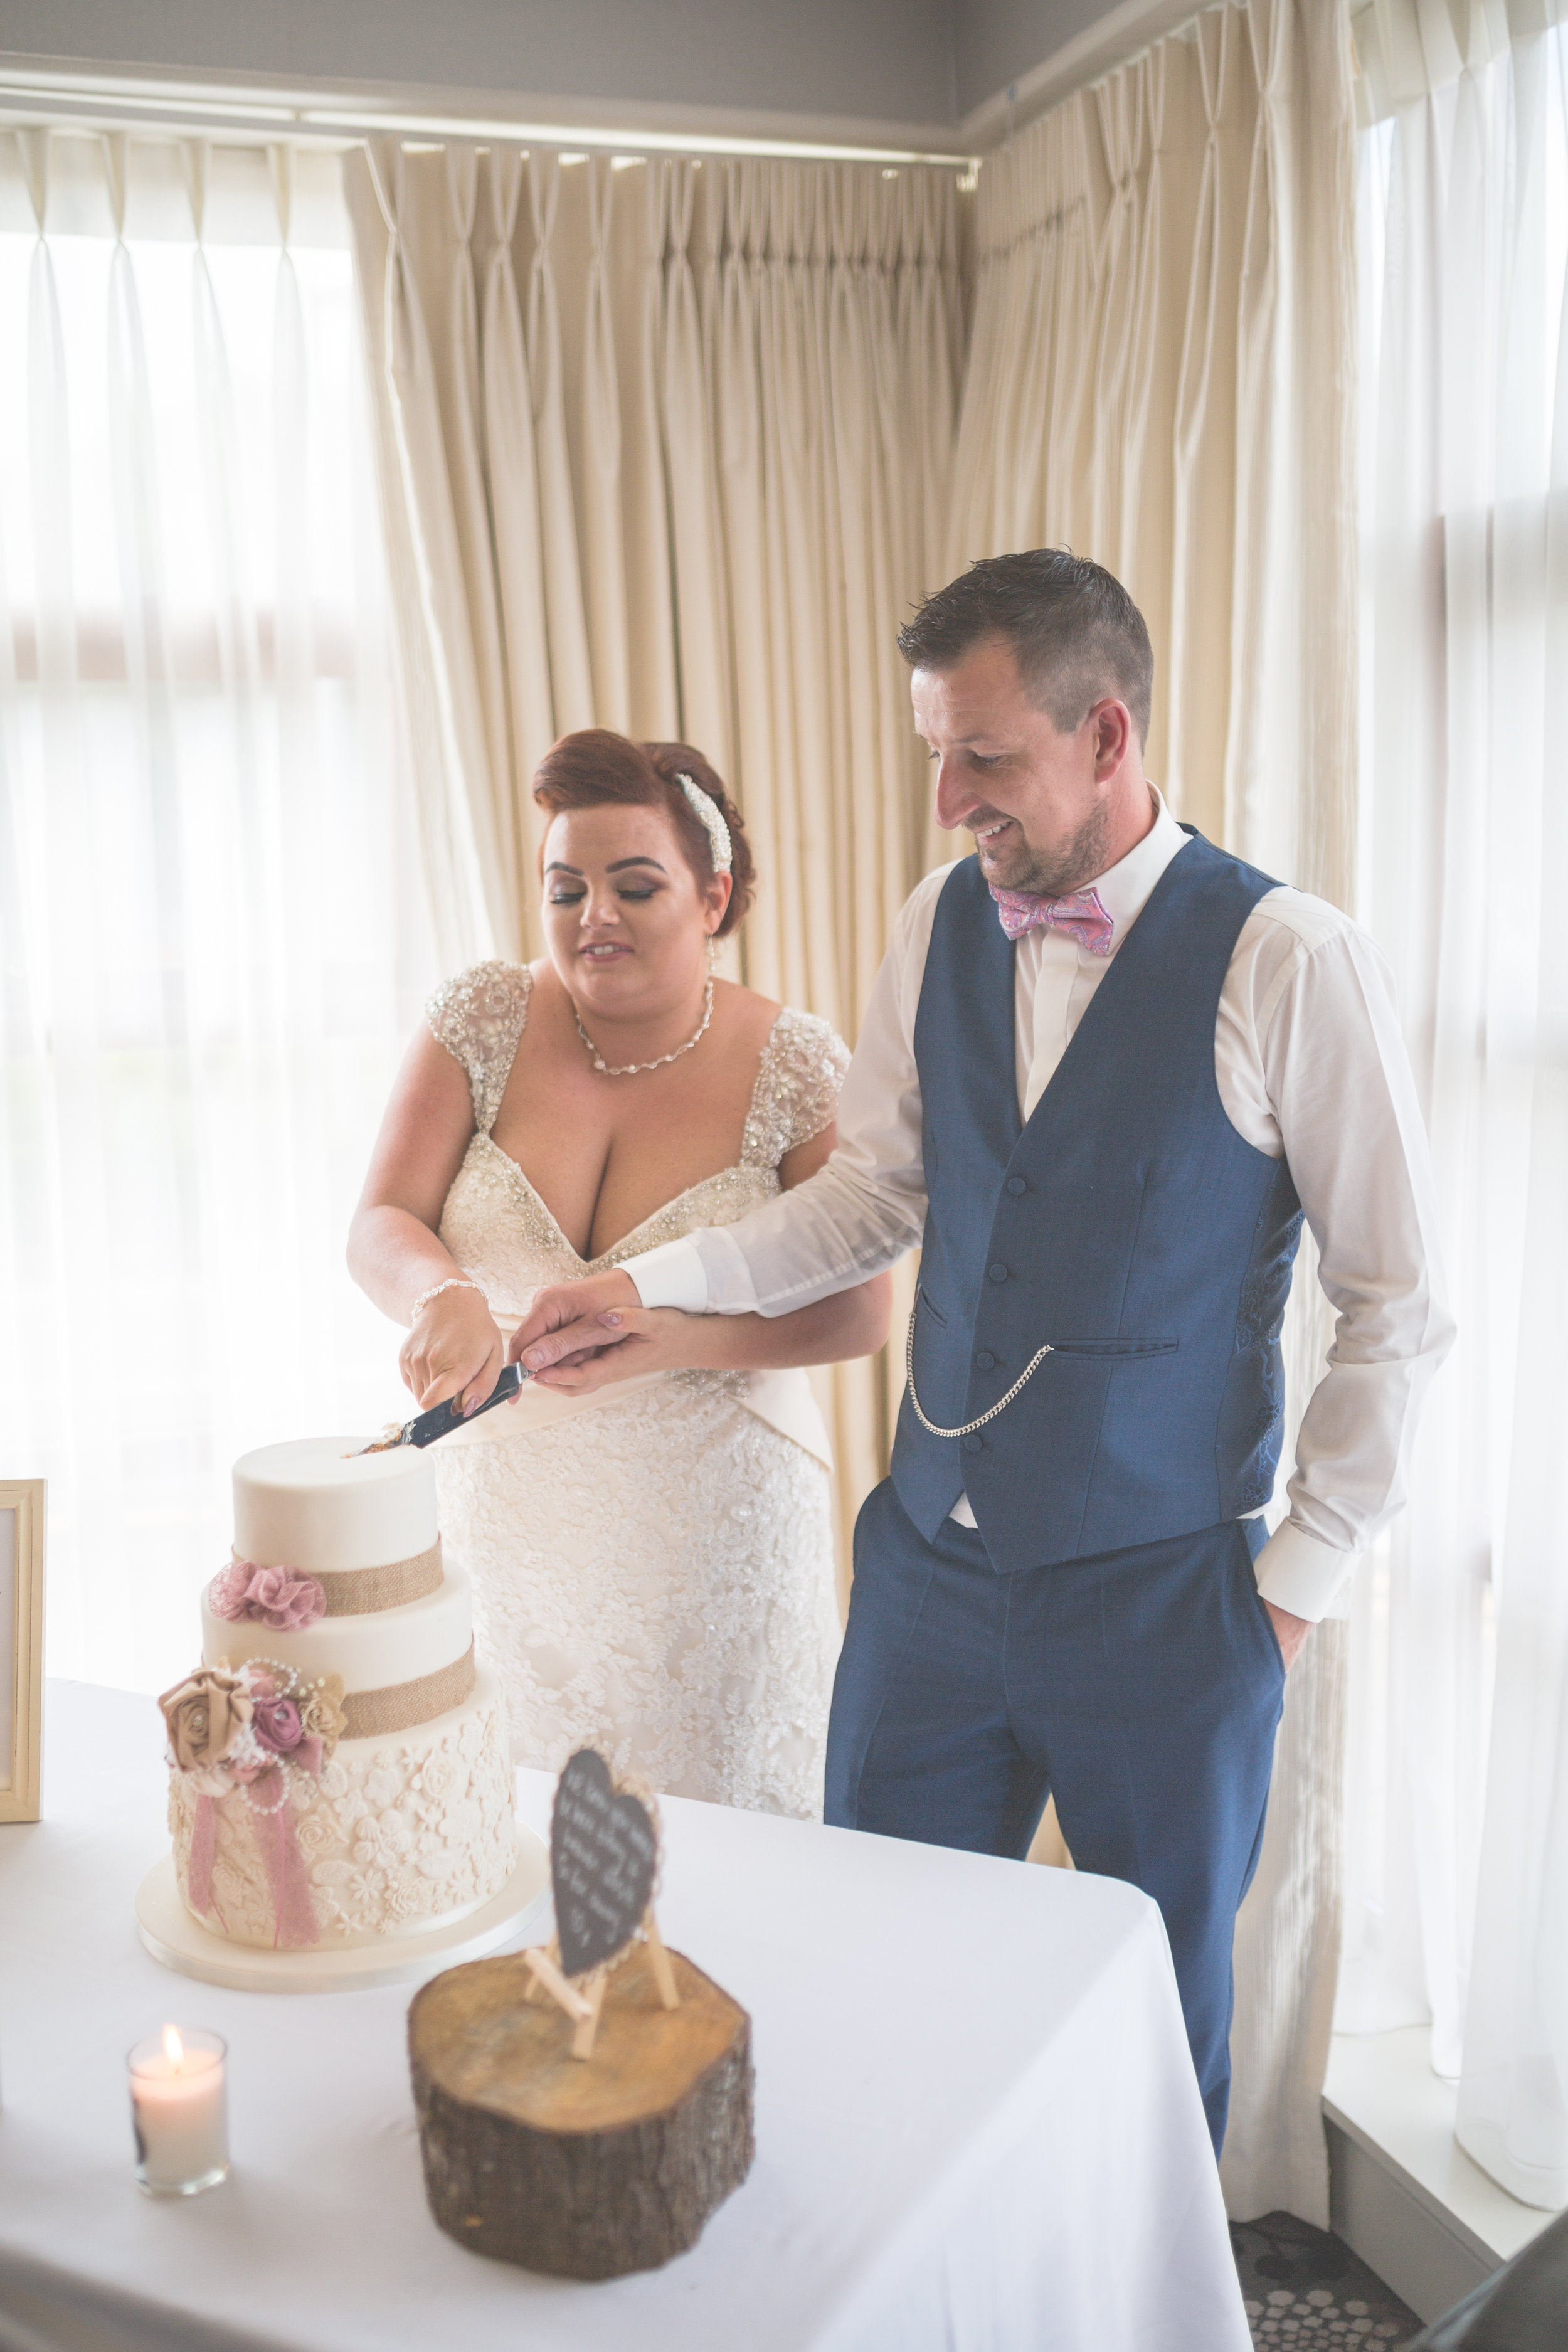 Antoinette & Stephen - Speeches | Brian McEwan Photography | Wedding Photographer Northern Ireland 103.jpg